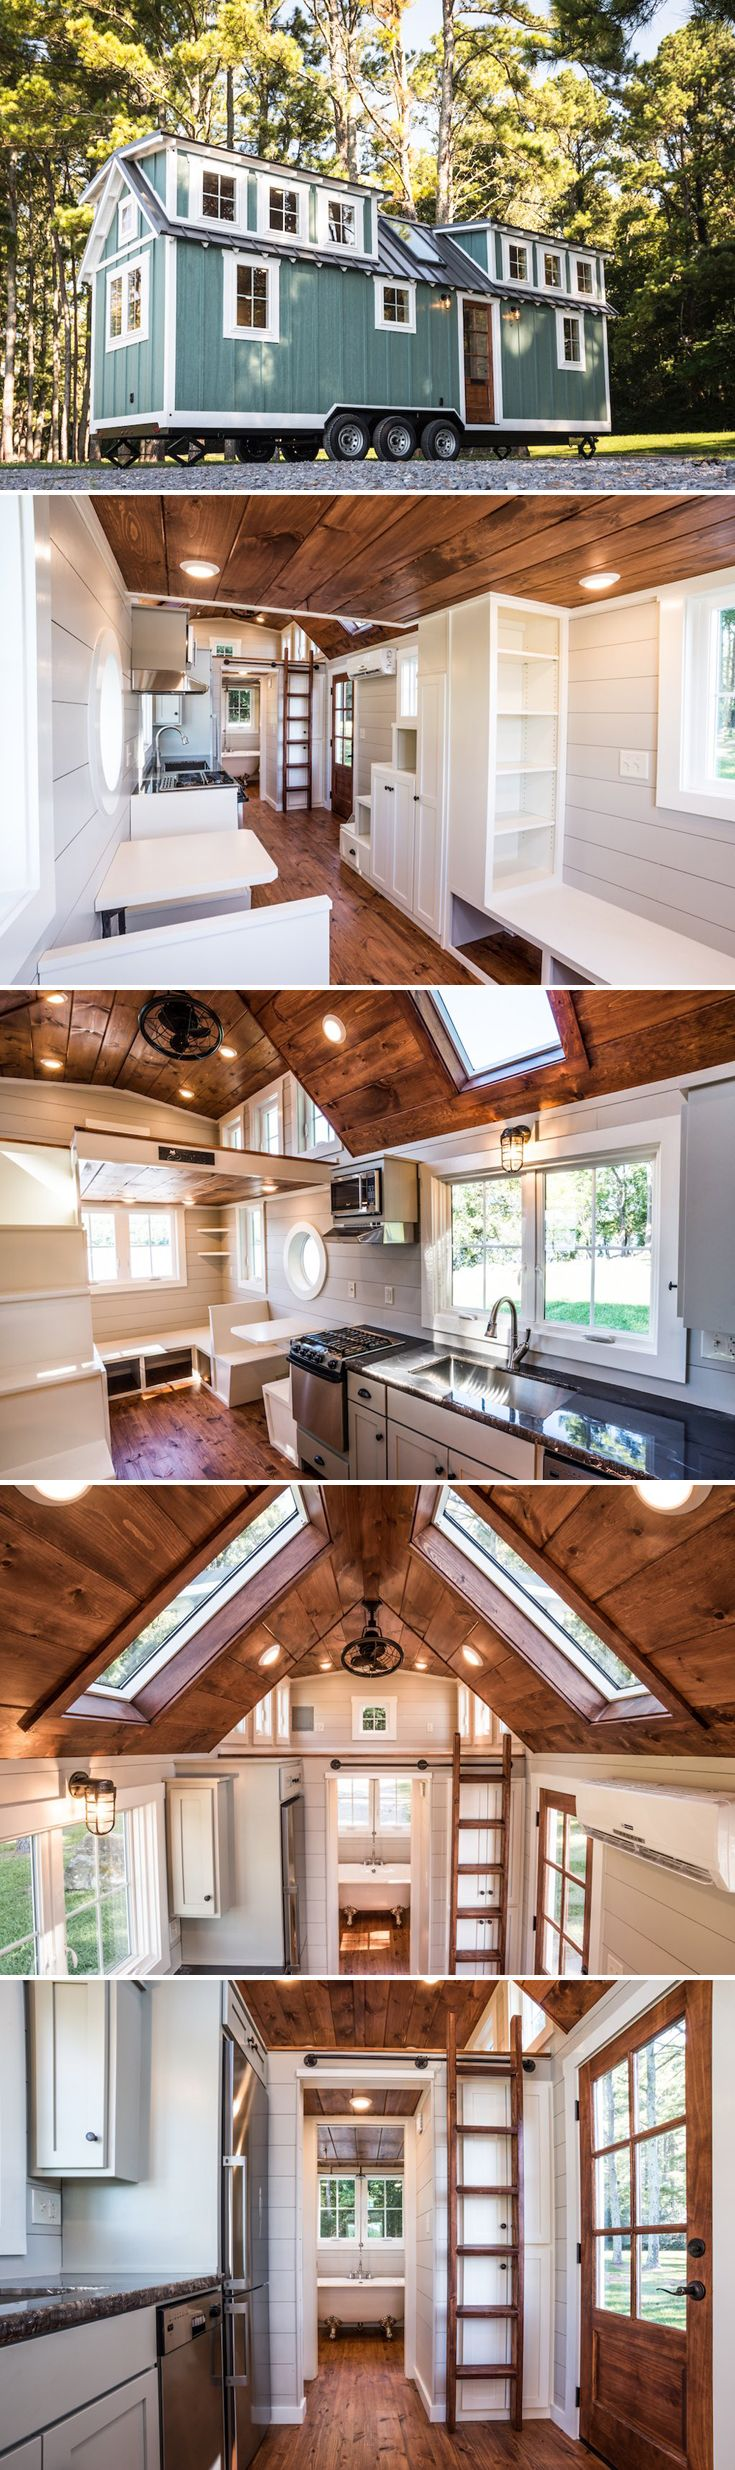 The Ridgewood is a 28' dual-lofted tiny house by Timbercraft Tiny Homes. The country style home has board-and-batten siding and white rafter tails.